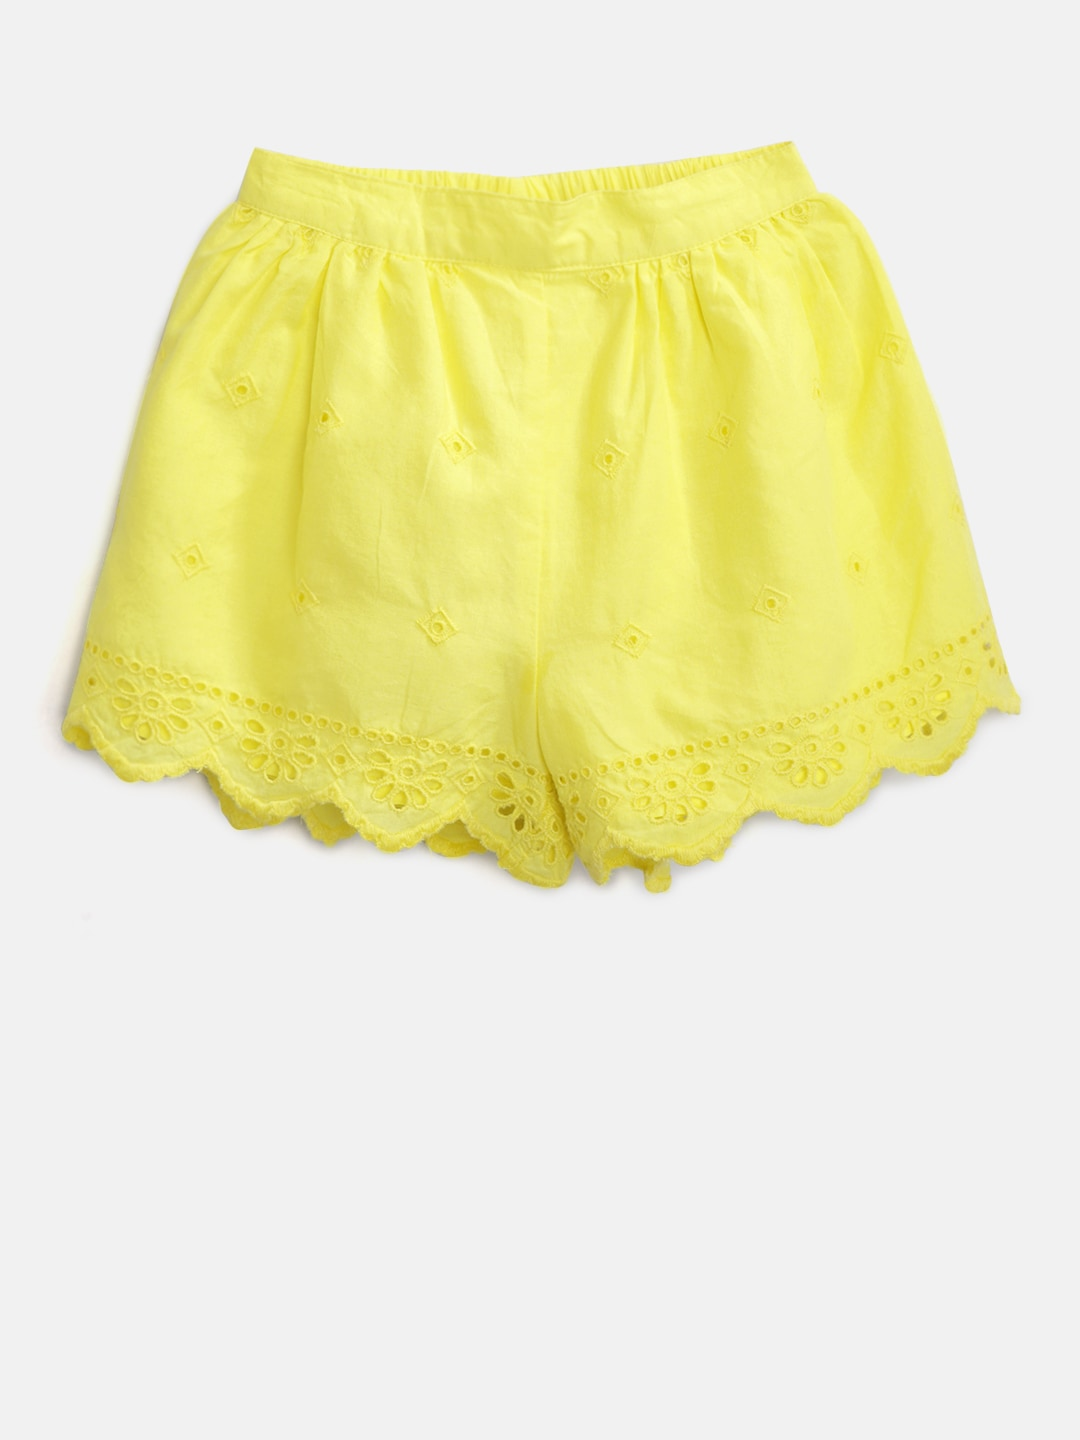 b8afba32e3fb Girls Clothes - Buy Girls Clothing Online in India